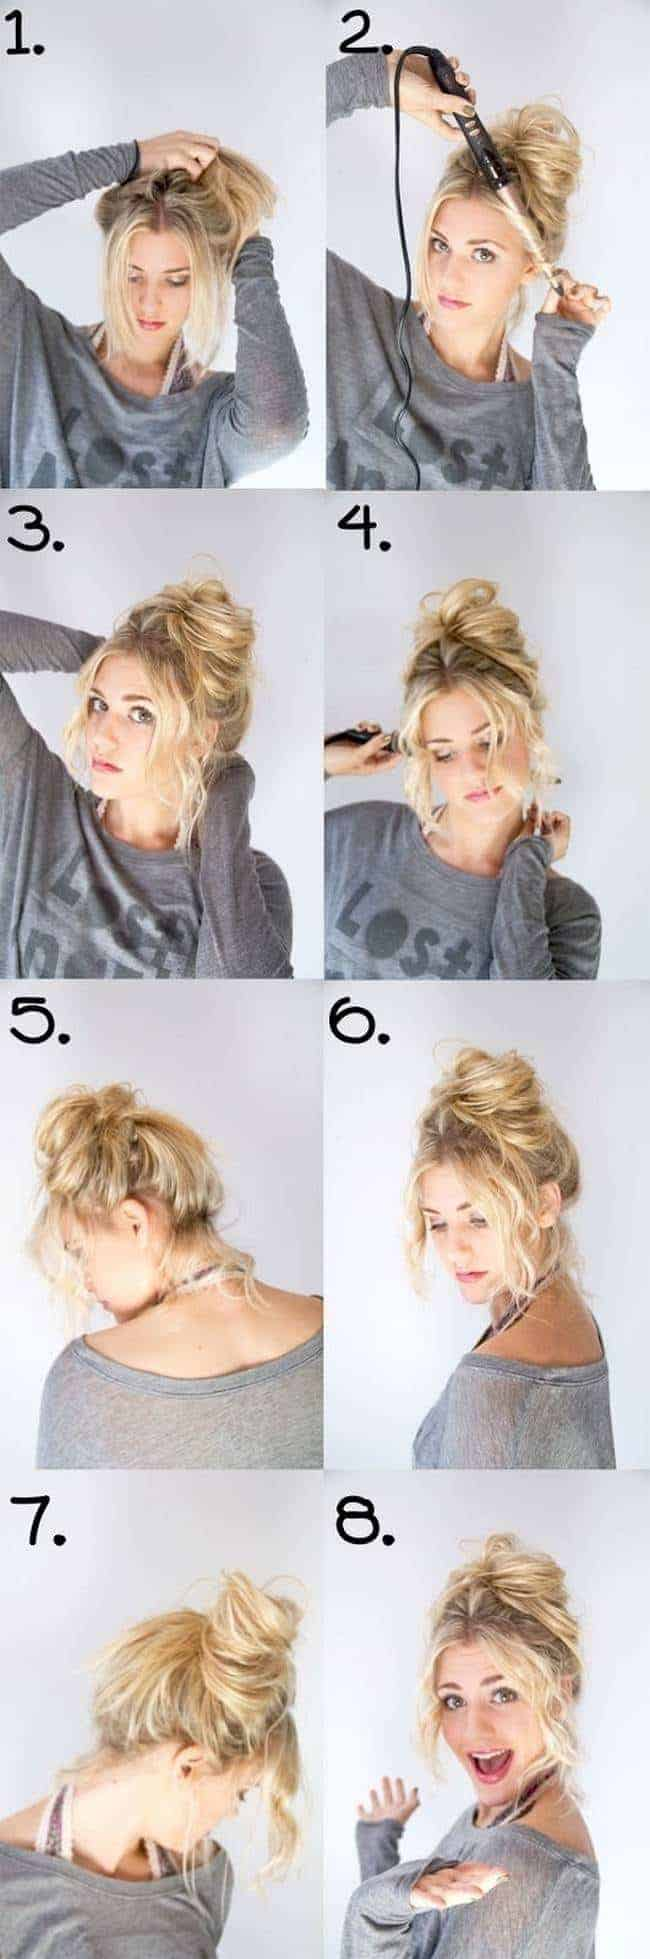 Easy updo hairstyles step by step